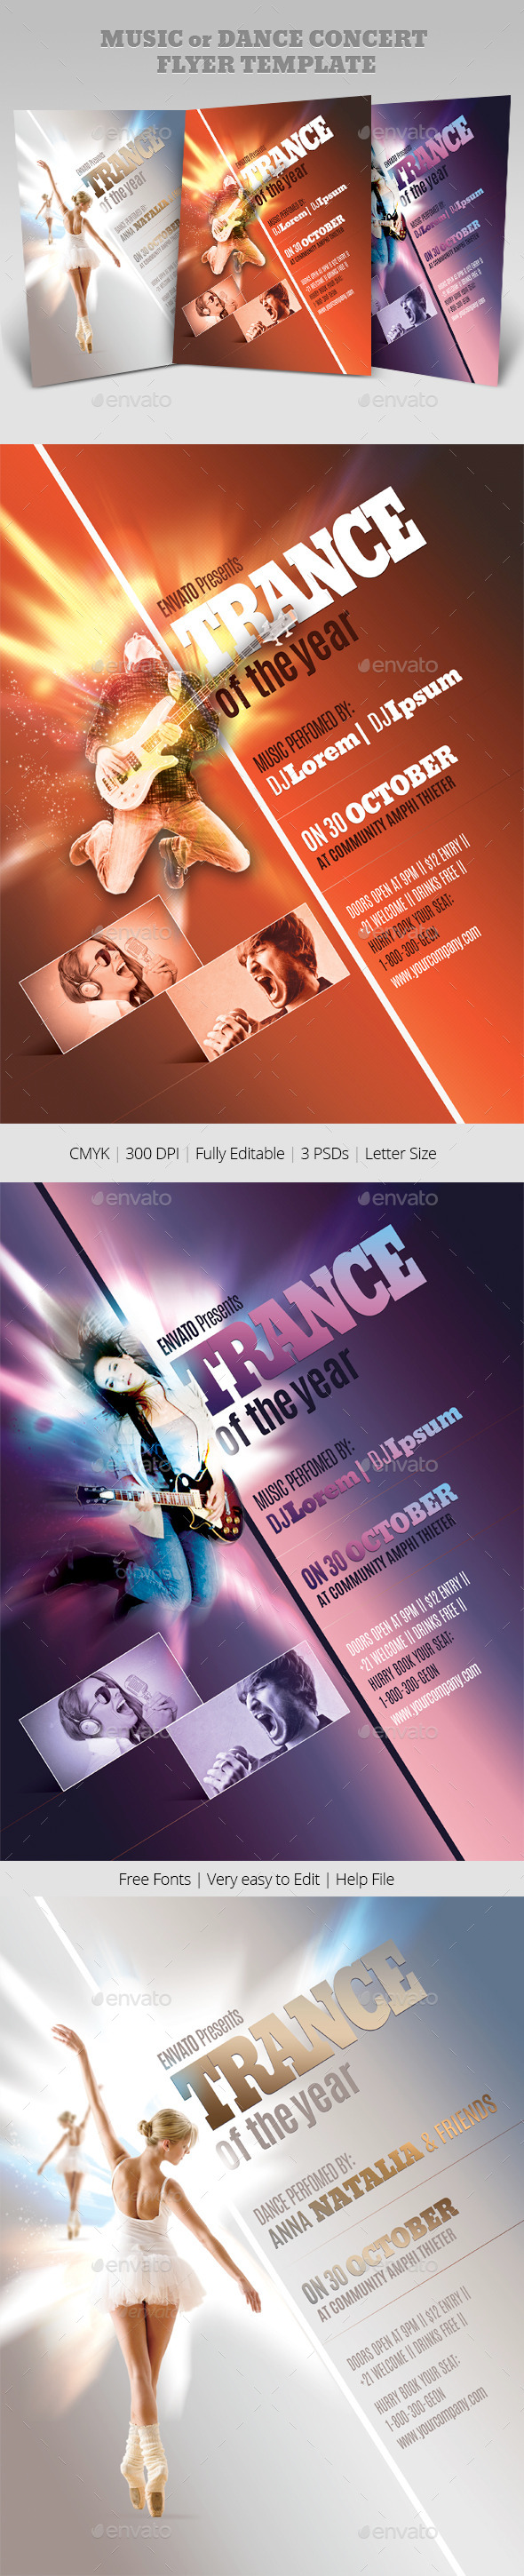 Music or Dance Concert Flyer Templates - Events Flyers